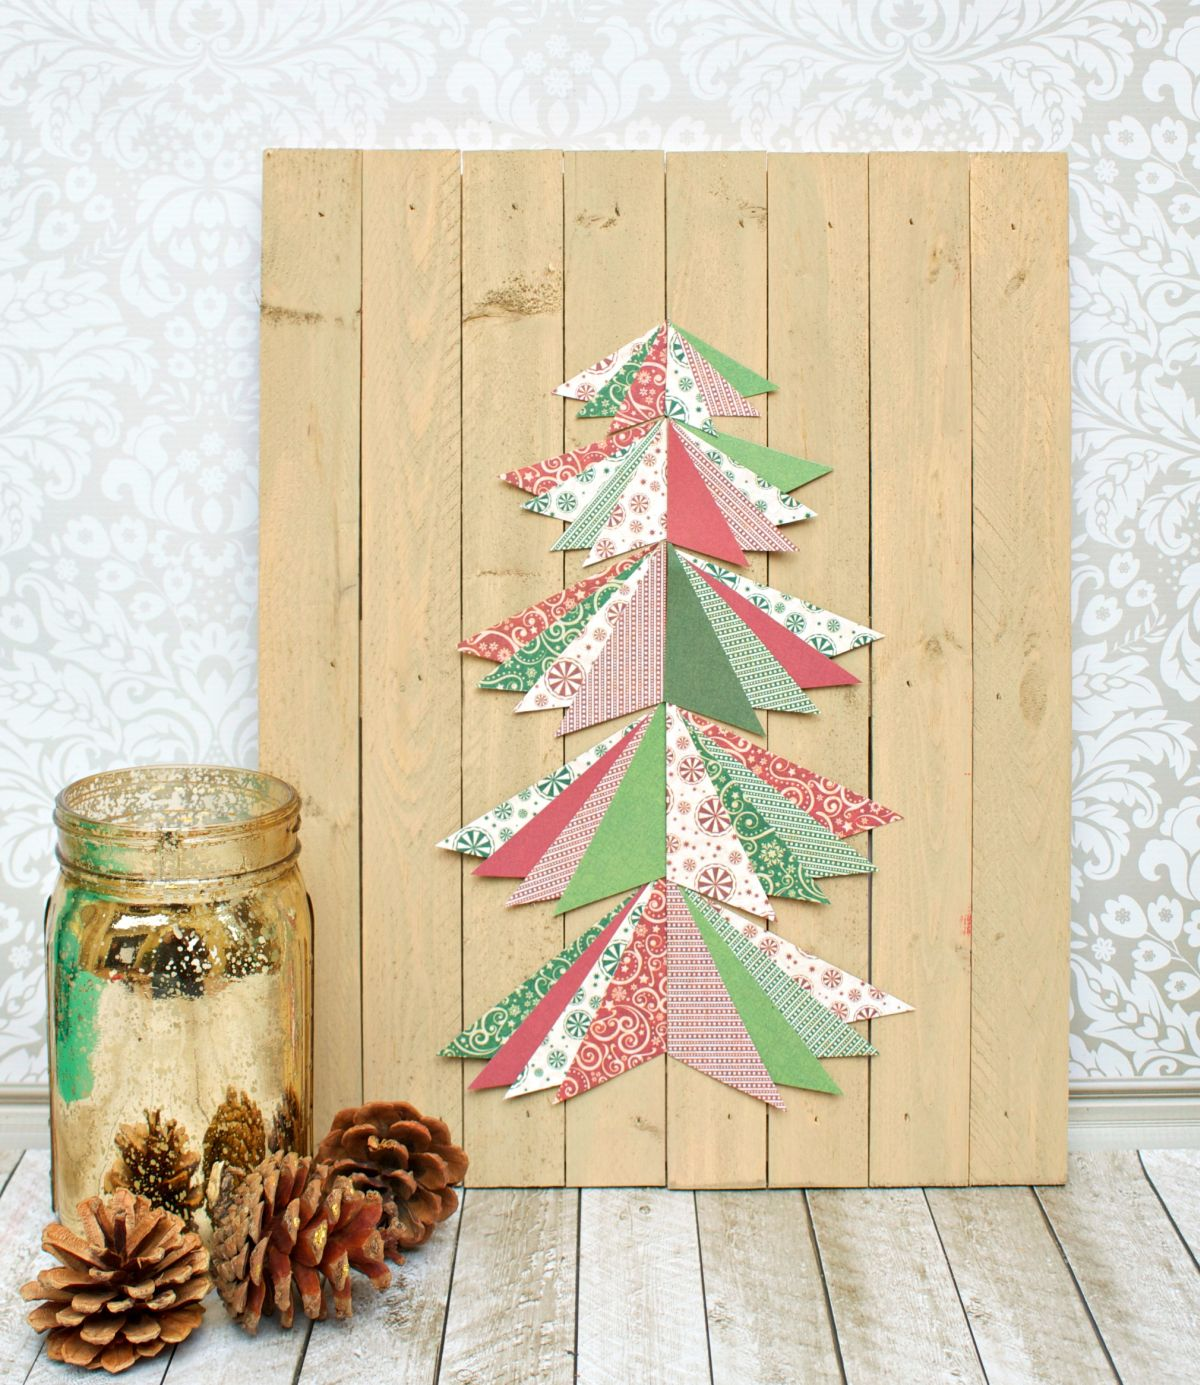 Charming DIY Decorations For A Rustic Christmas images 1